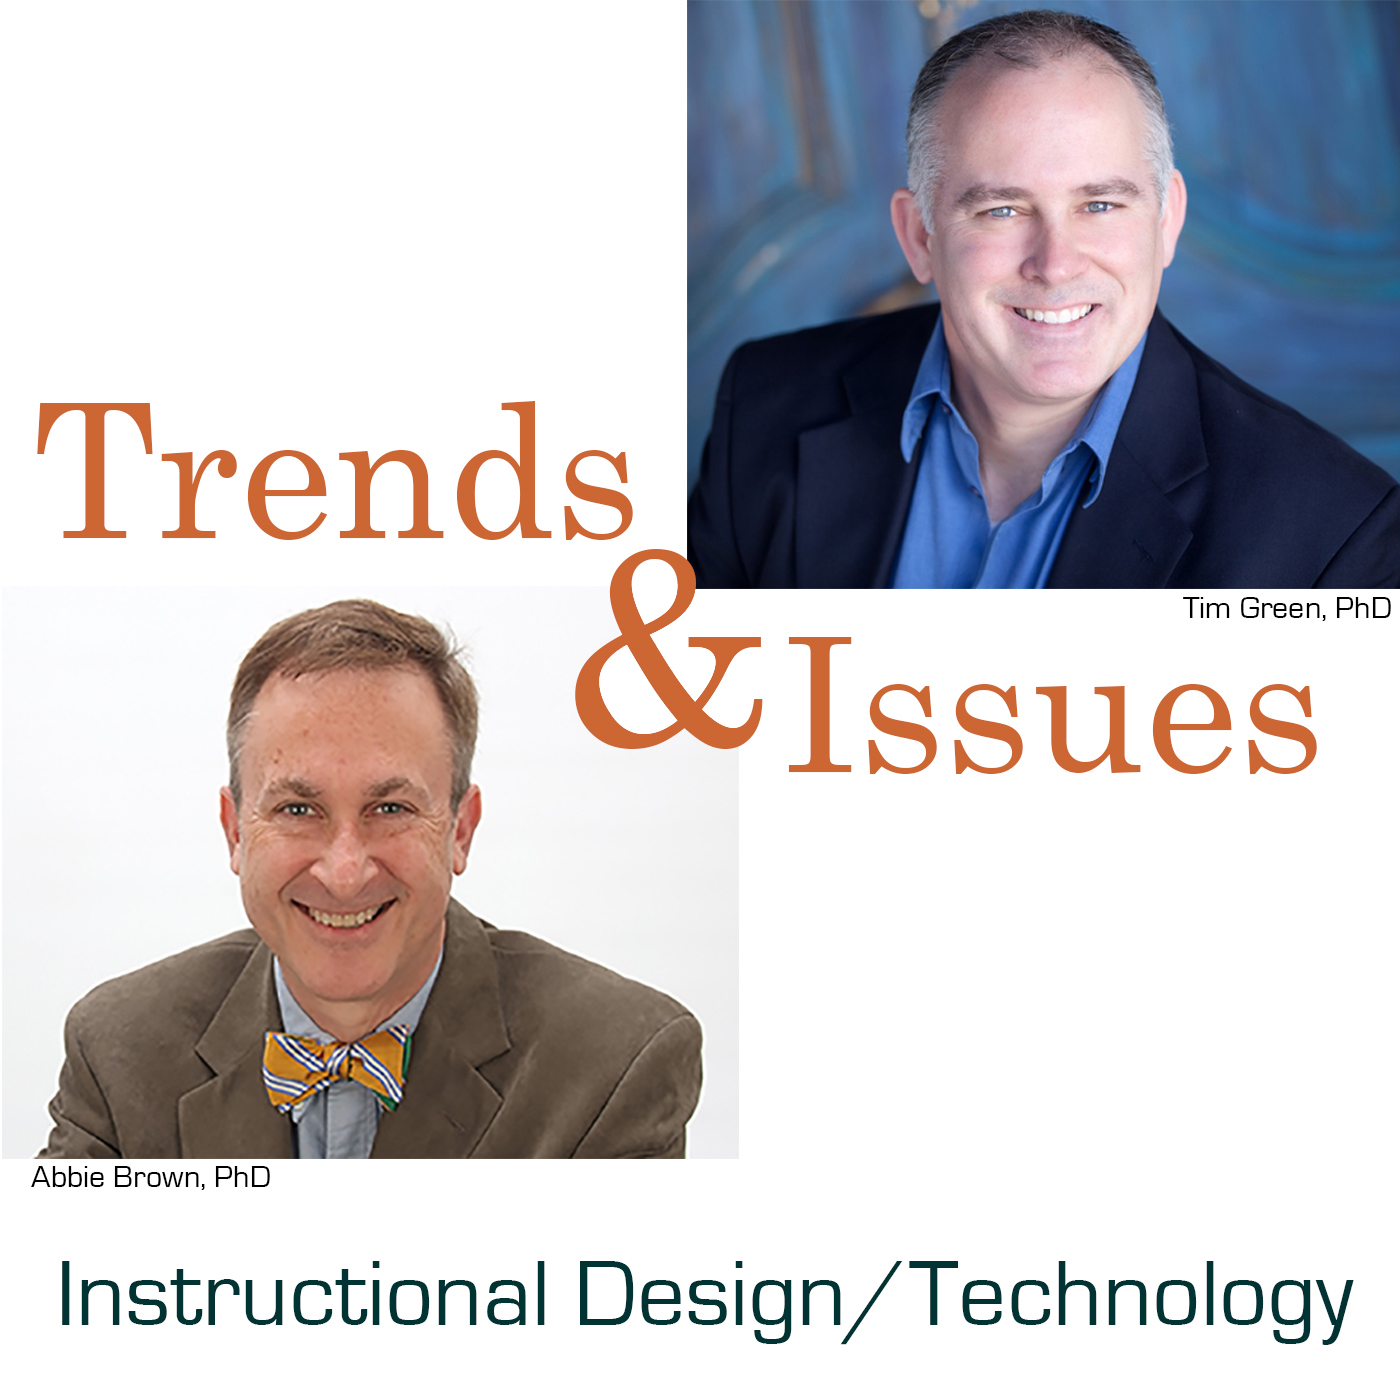 Instructional Design and Teaching, Digital Security, Hardware & Software